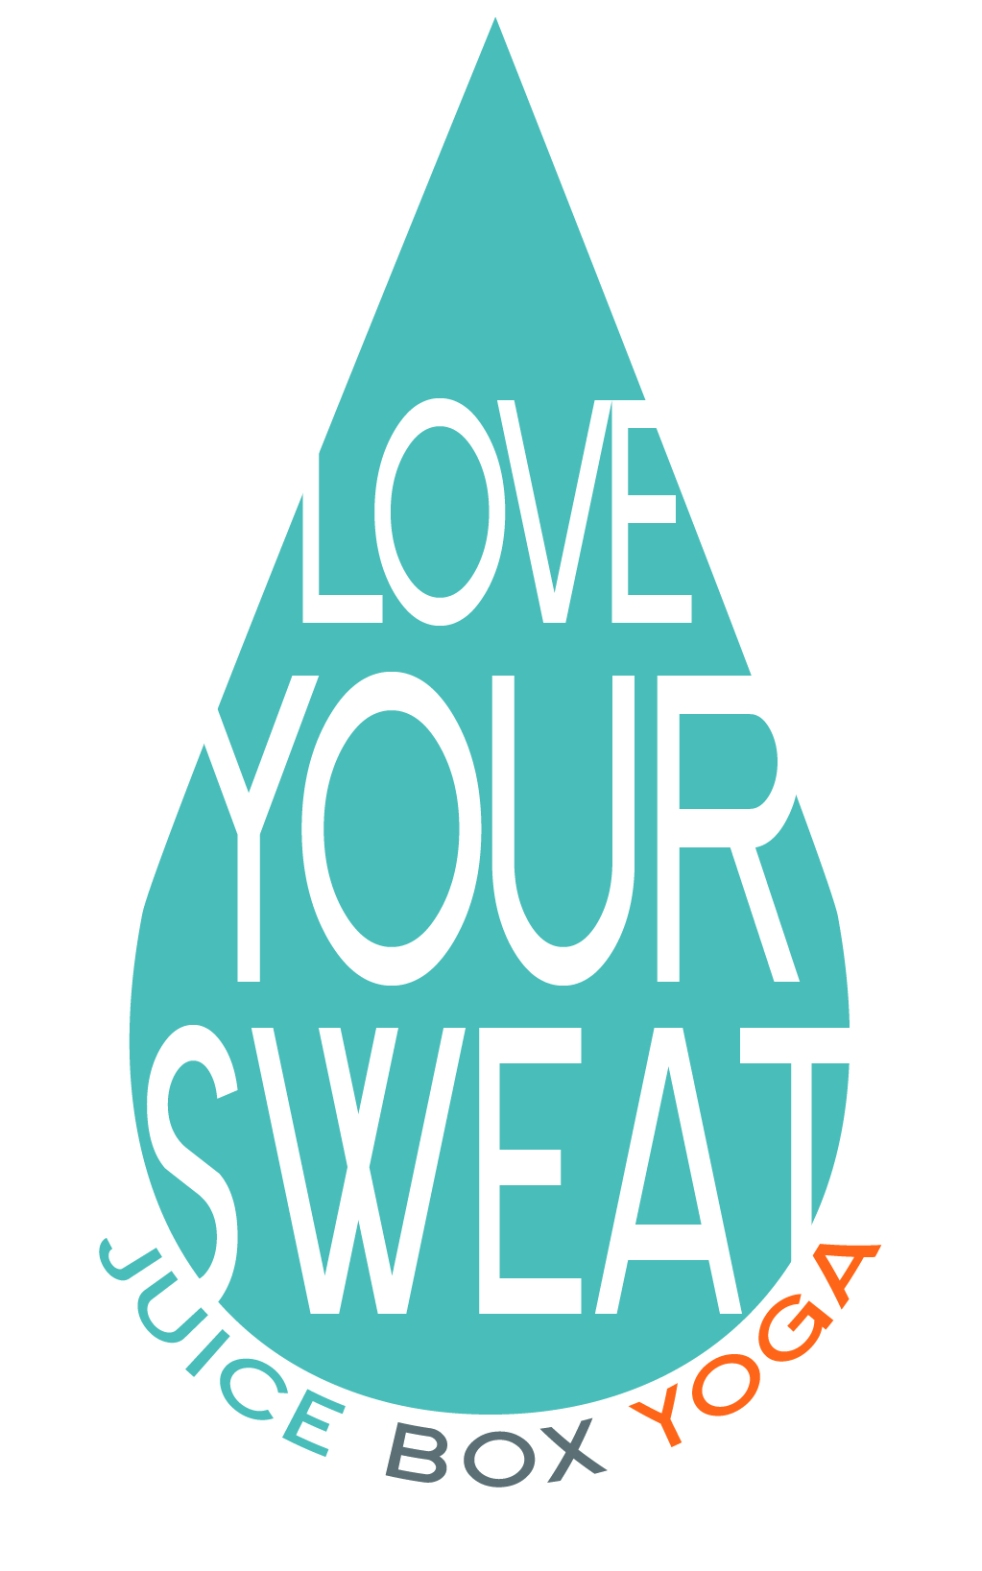 LOVE YOUR SWEAT